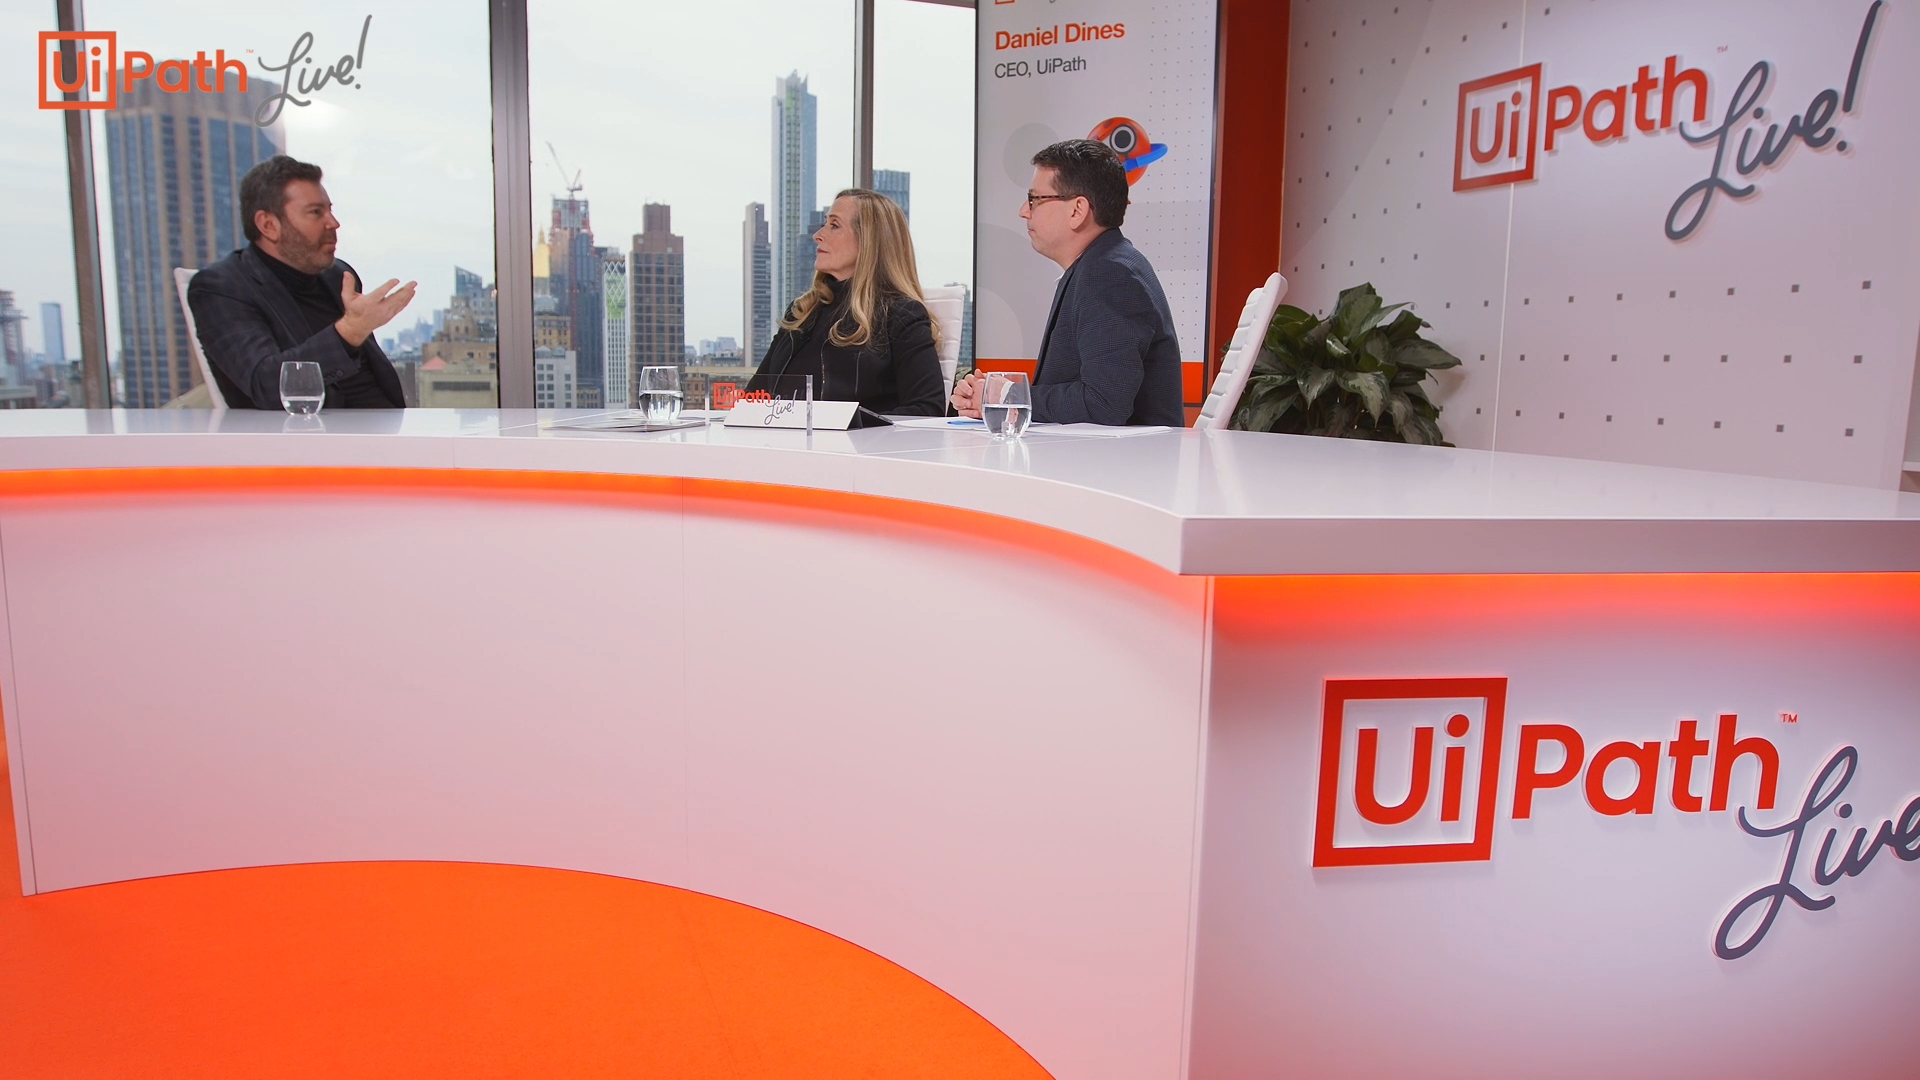 UiPath Live - Best of CEO Daniel Dines Unscripted | UiPath